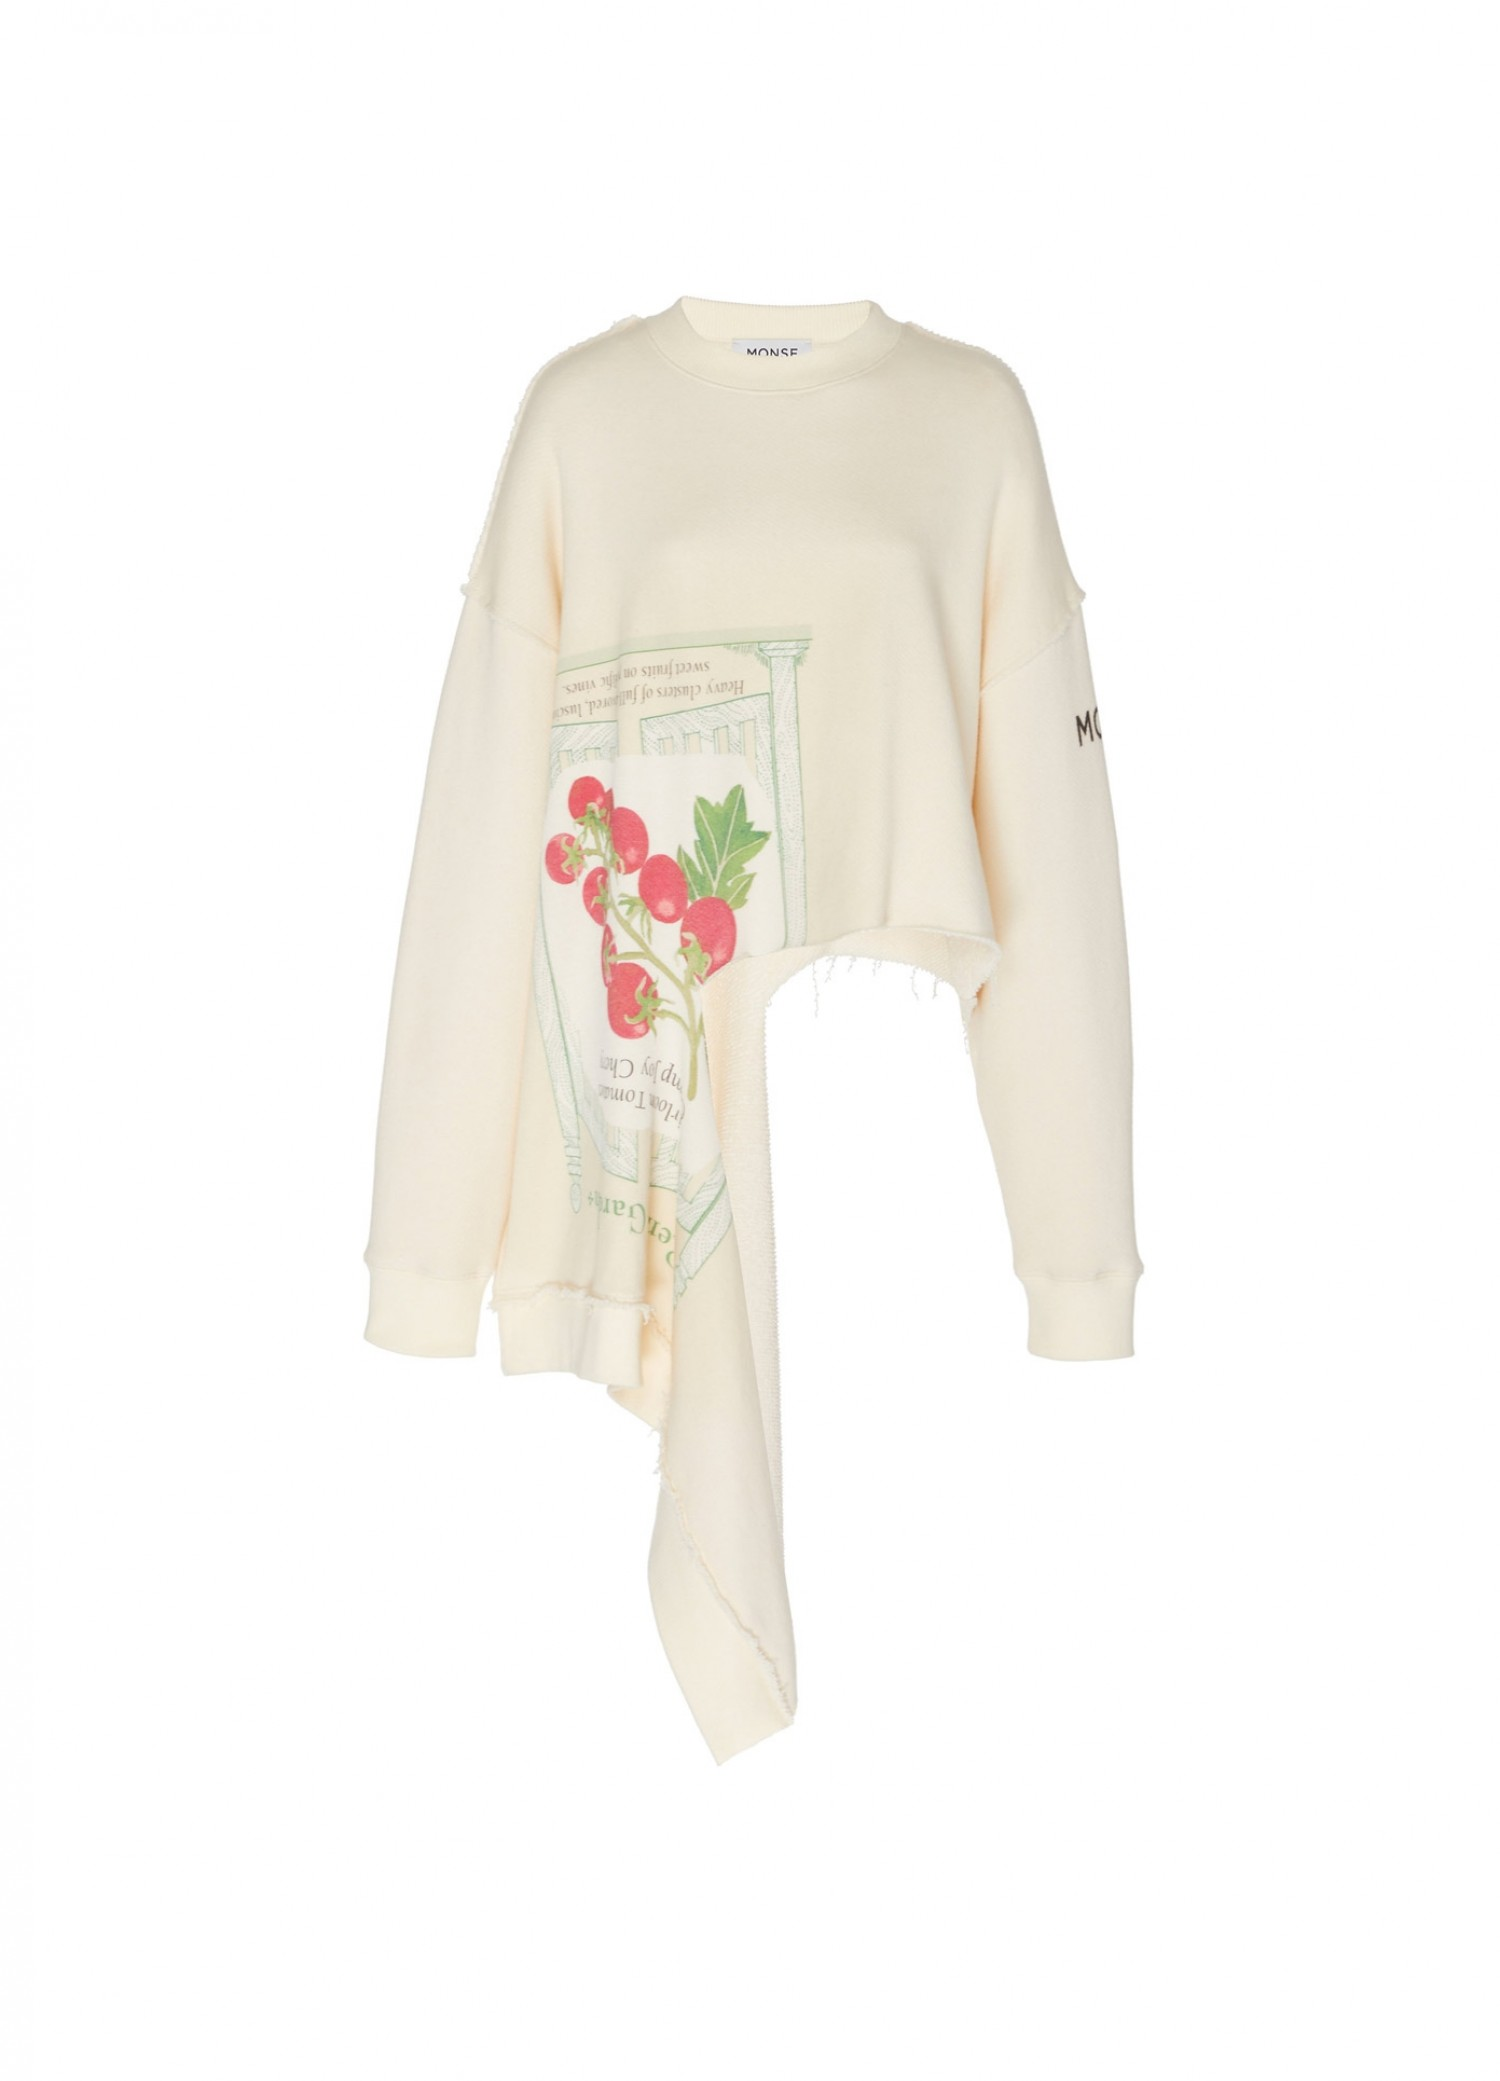 MONSE Seed Packet Torn Sweatshirt Flat Front